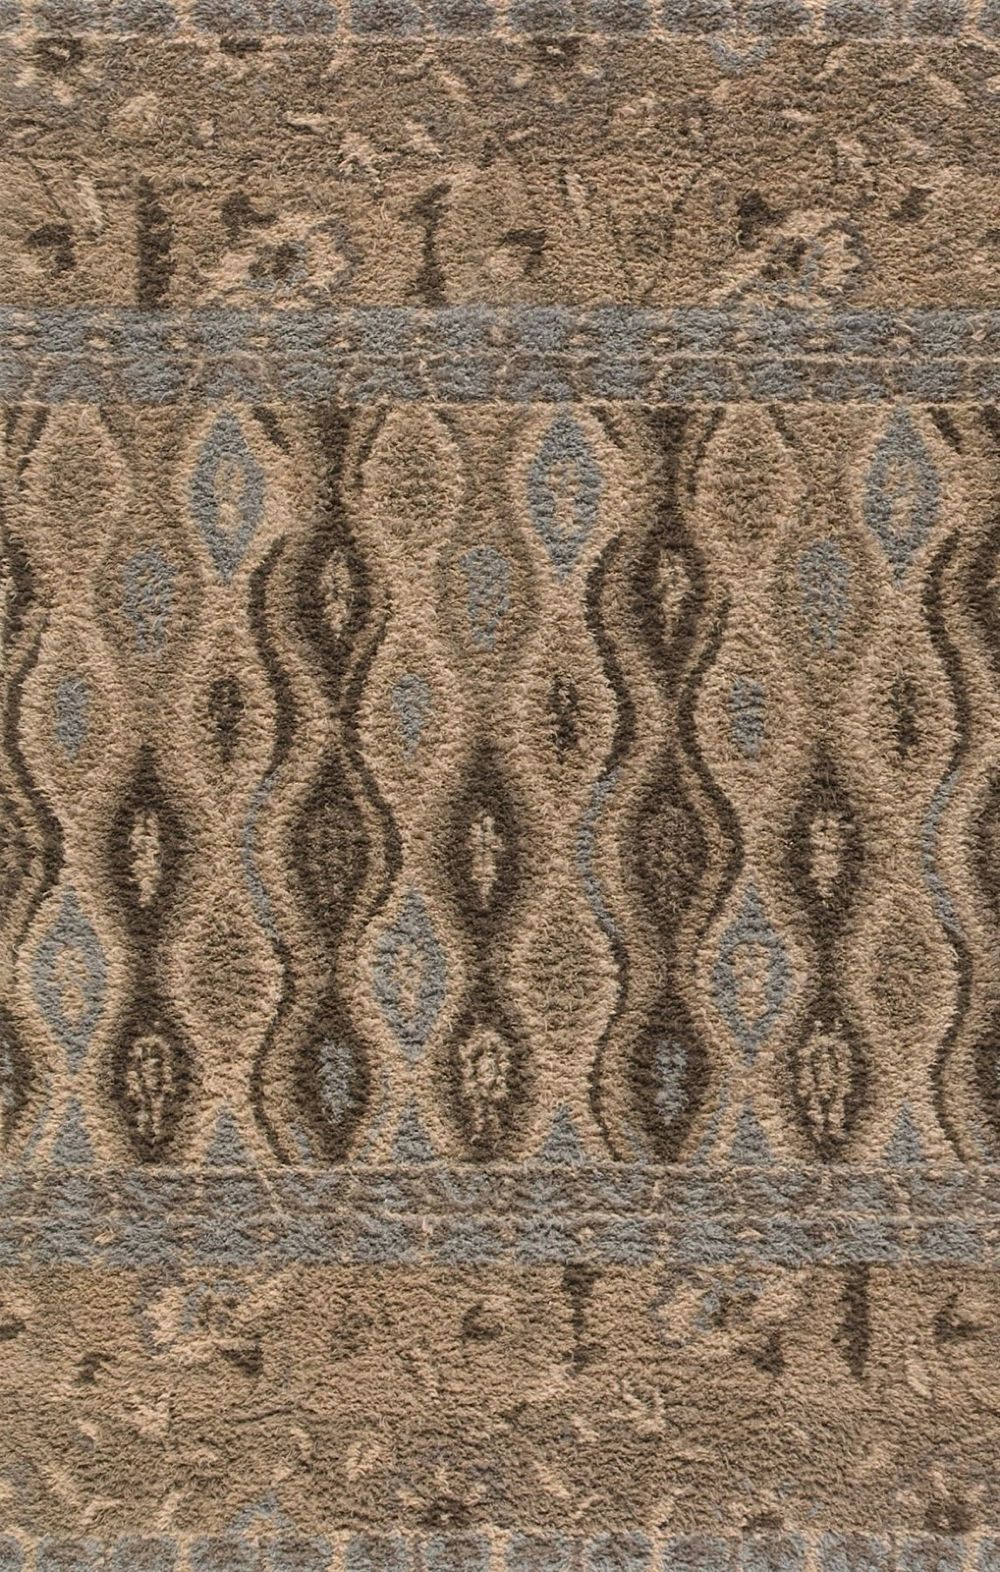 uttermost cadiz contemporary area rug collection